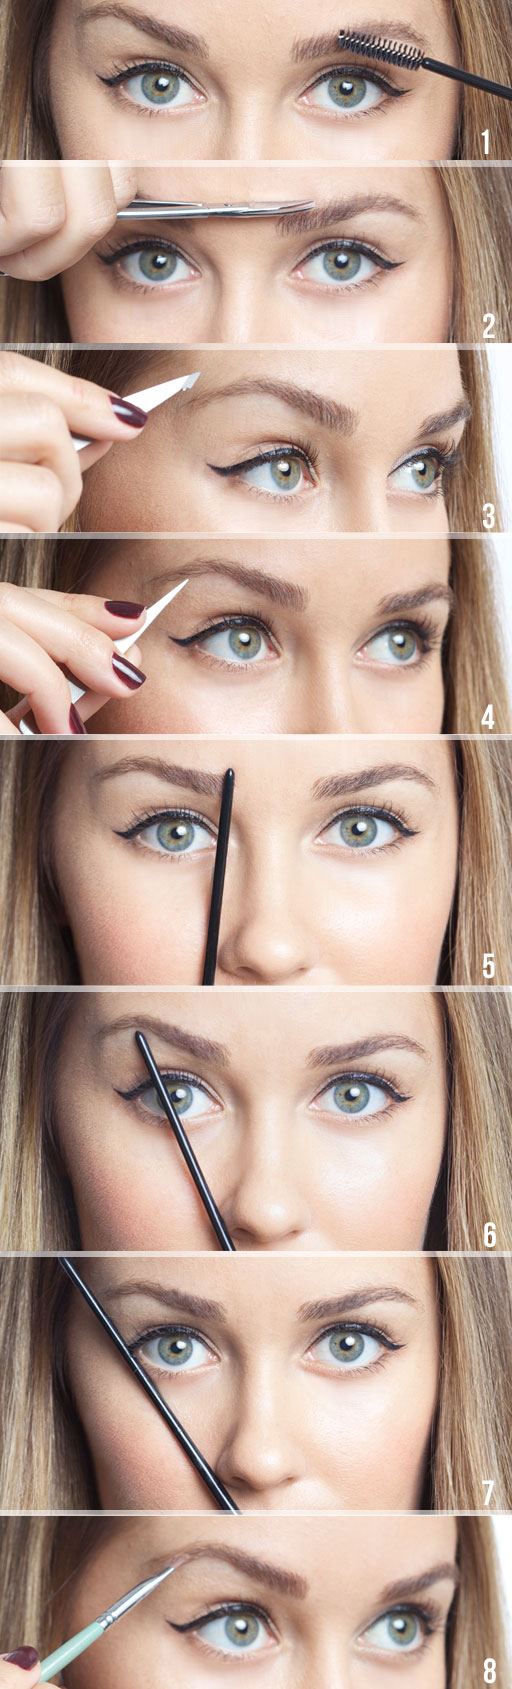 how to tweeze your eyebrows